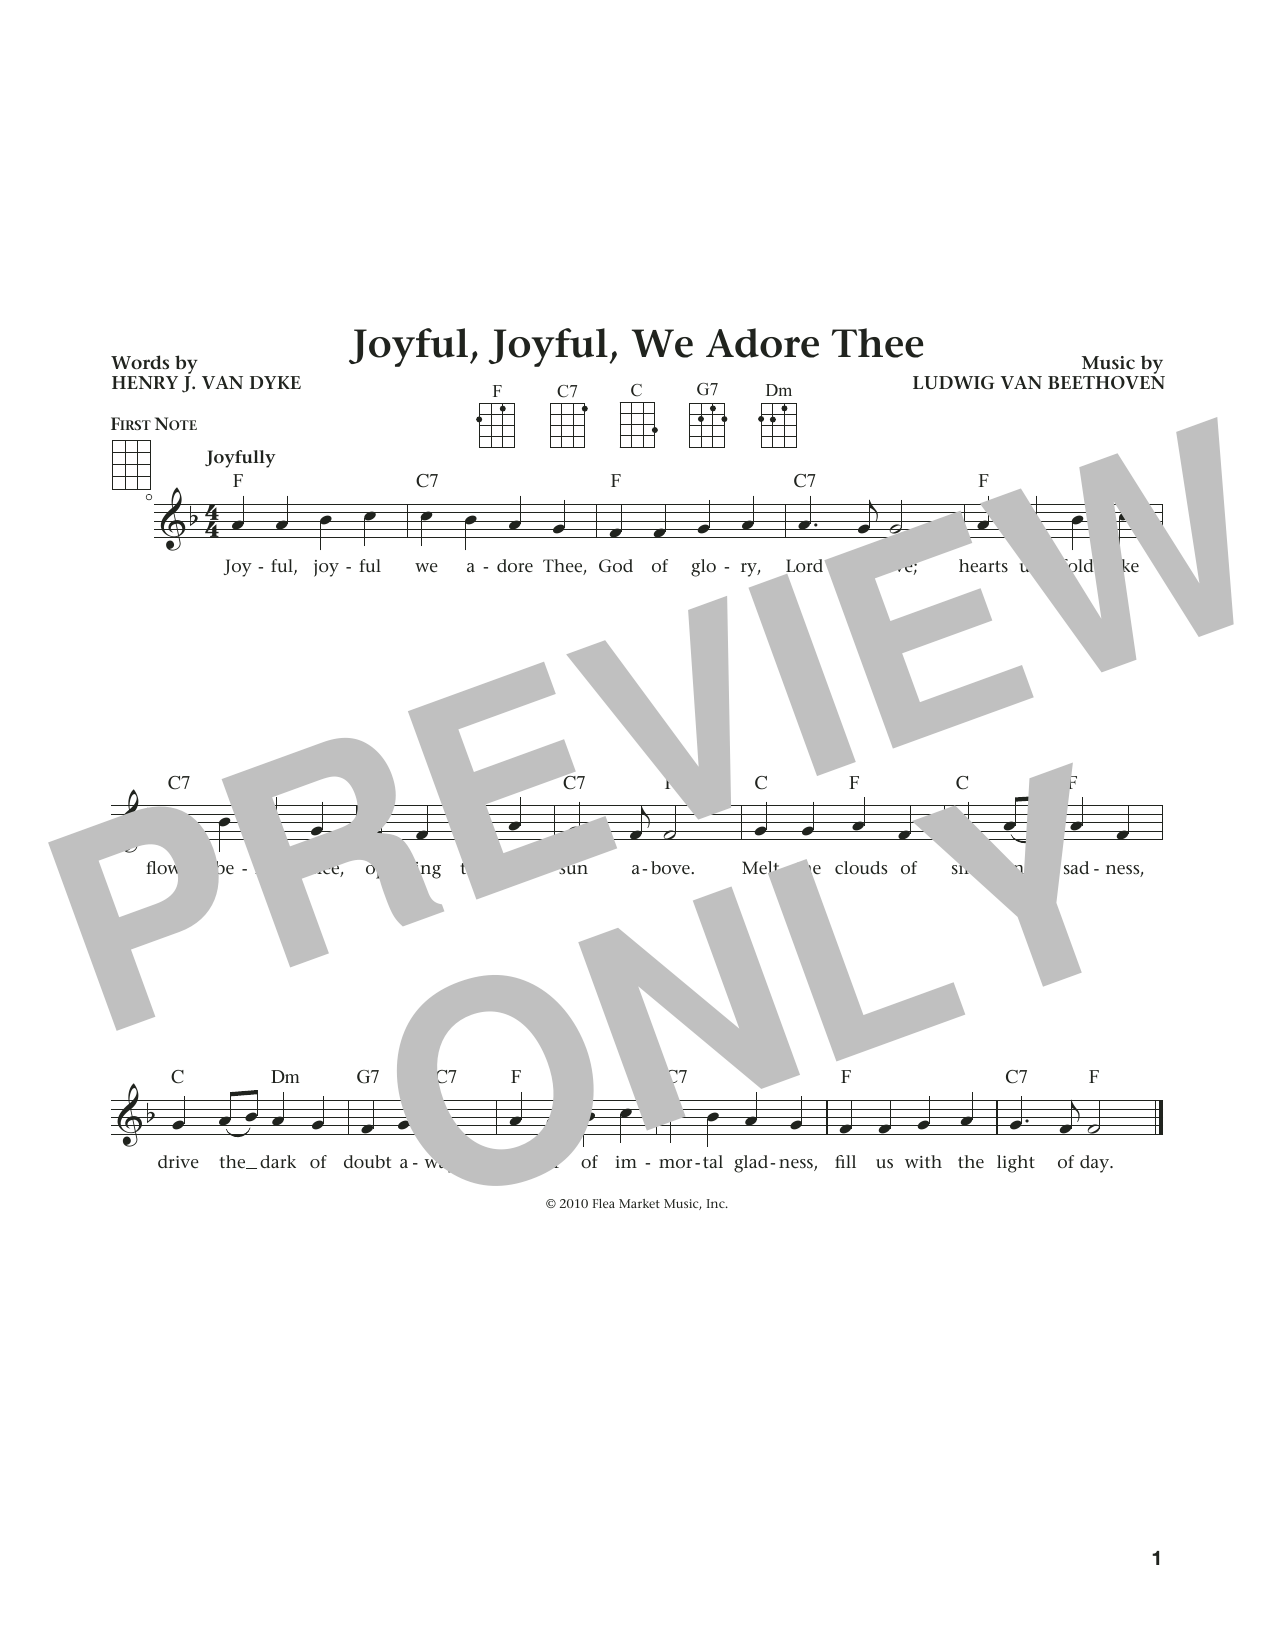 Joyful, Joyful, We Adore Thee (from The Daily Ukulele) (arr. Liz and Jim Beloff) (Ukulele)